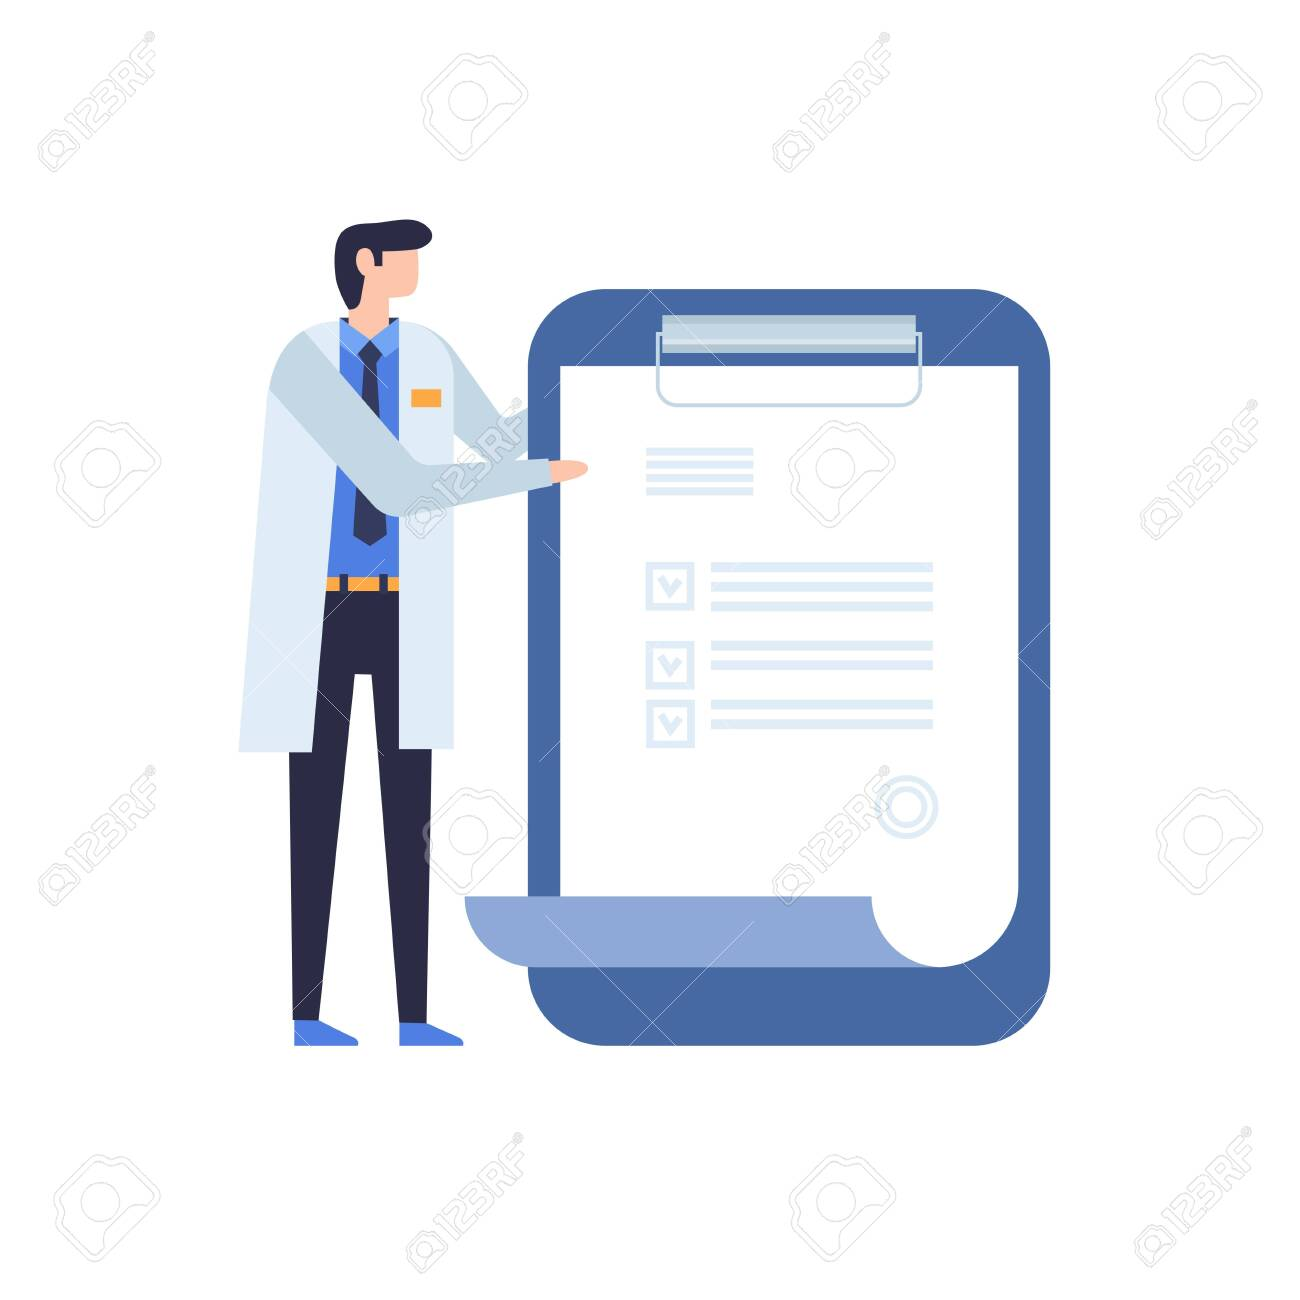 A doctor in a white coat shows a prescription on a tablet. The concept of treatment and examination in medicine. Vector illustration on white isolated background. - 151373204